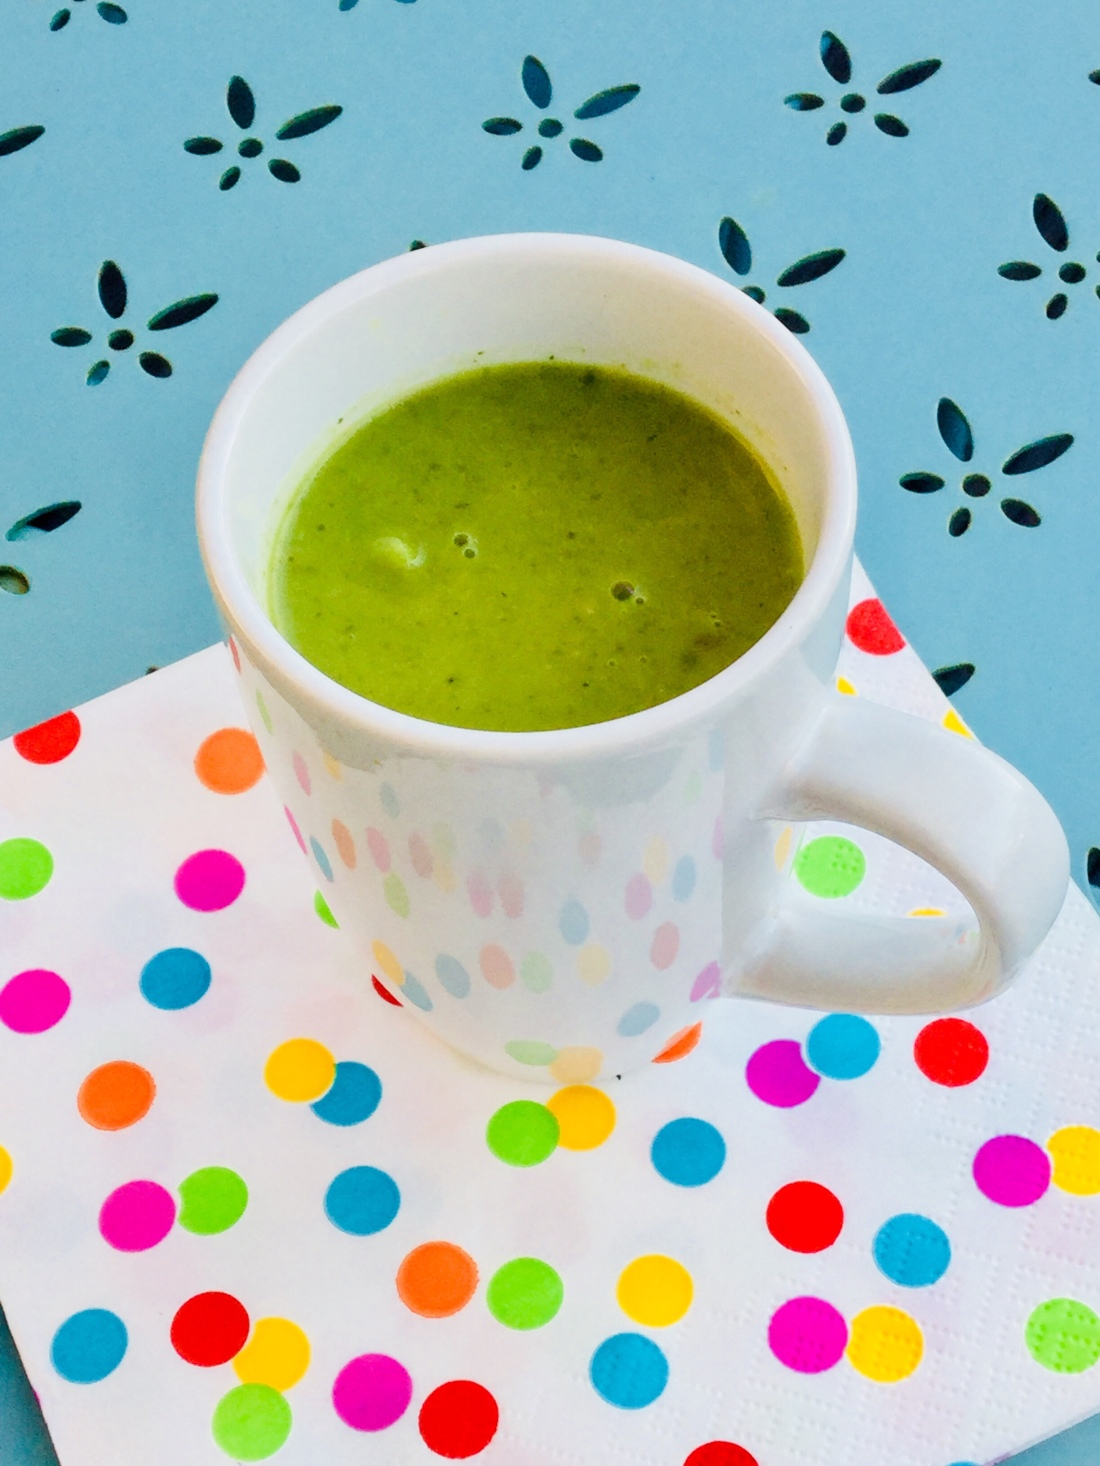 A mug of lettuce soup